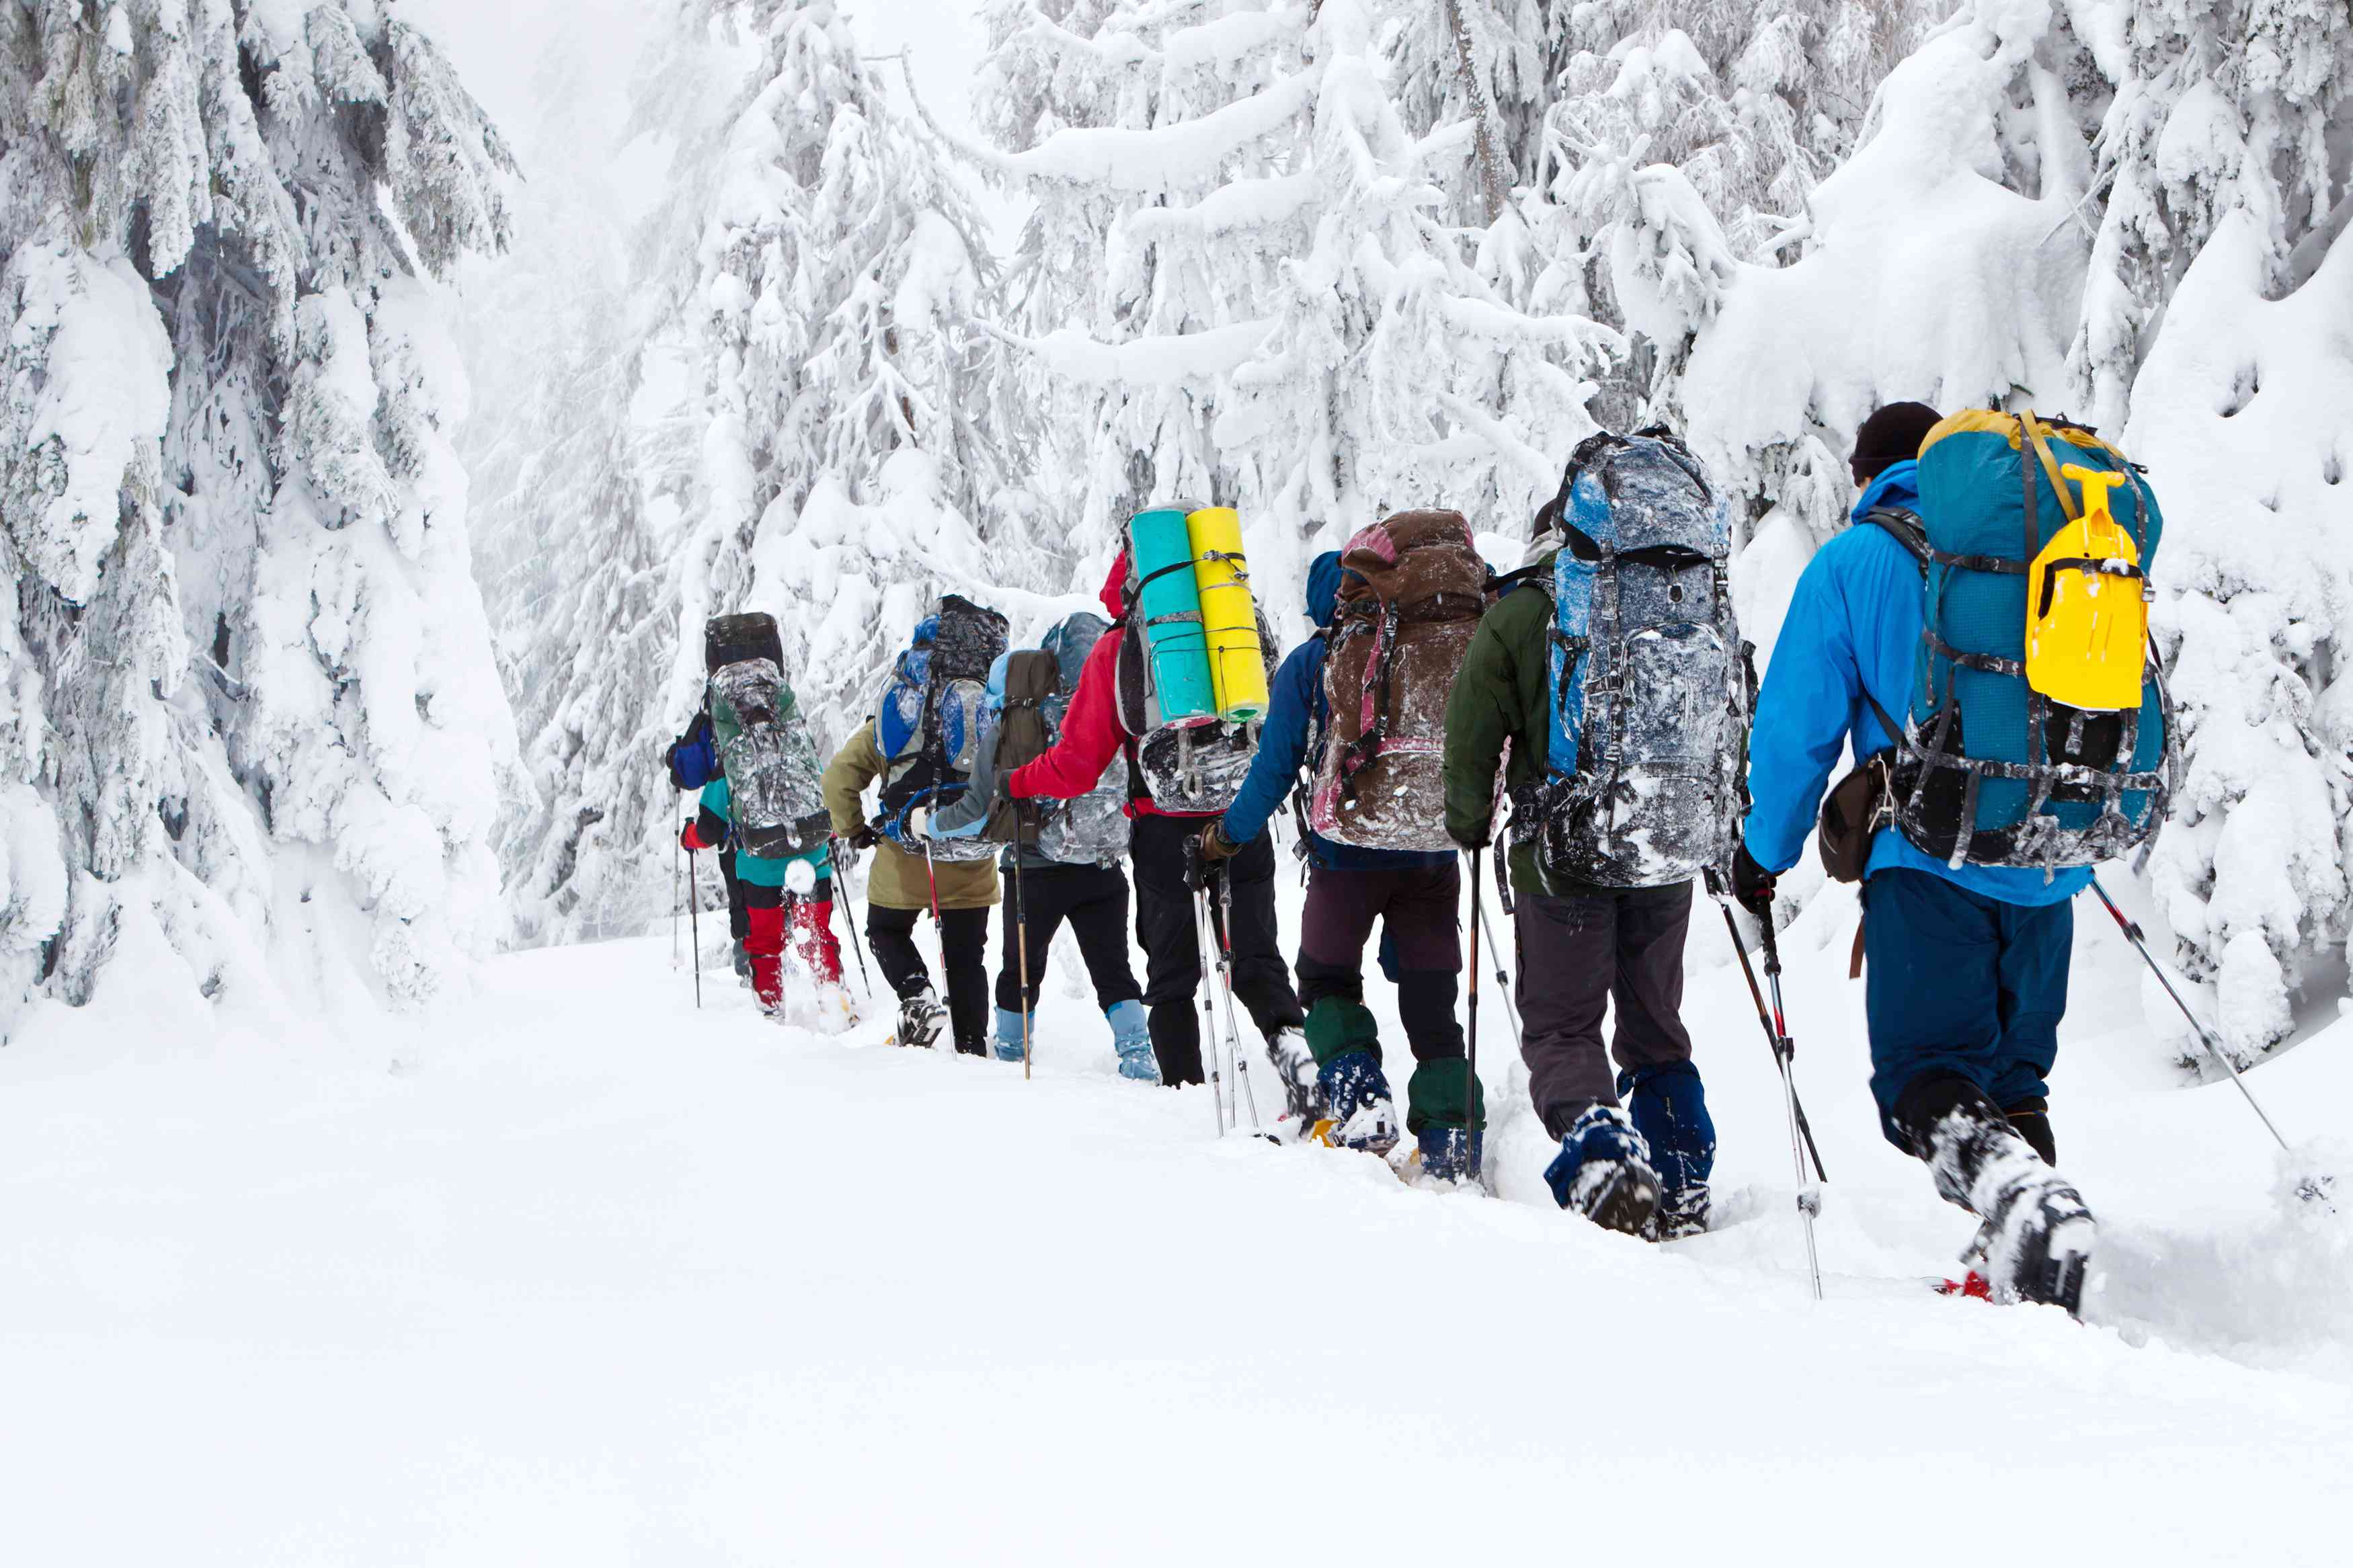 group of backpackers hiking through snow in winter